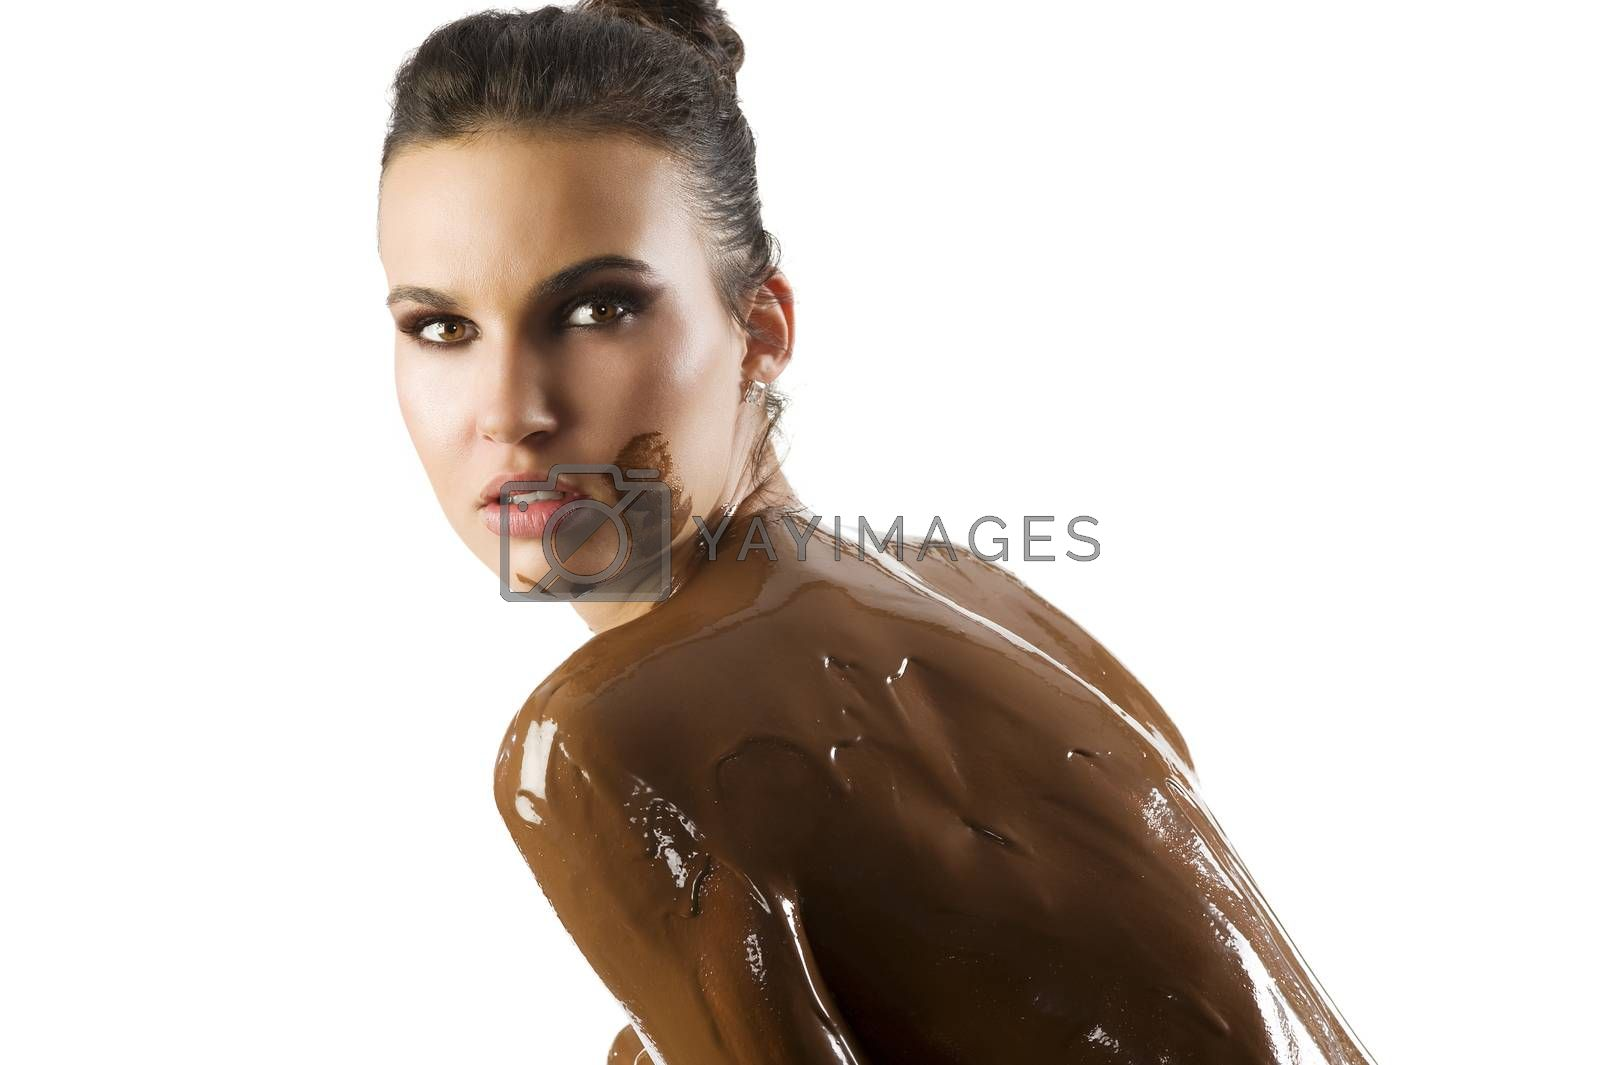 Royalty free image of the chocolate girl by fotoCD